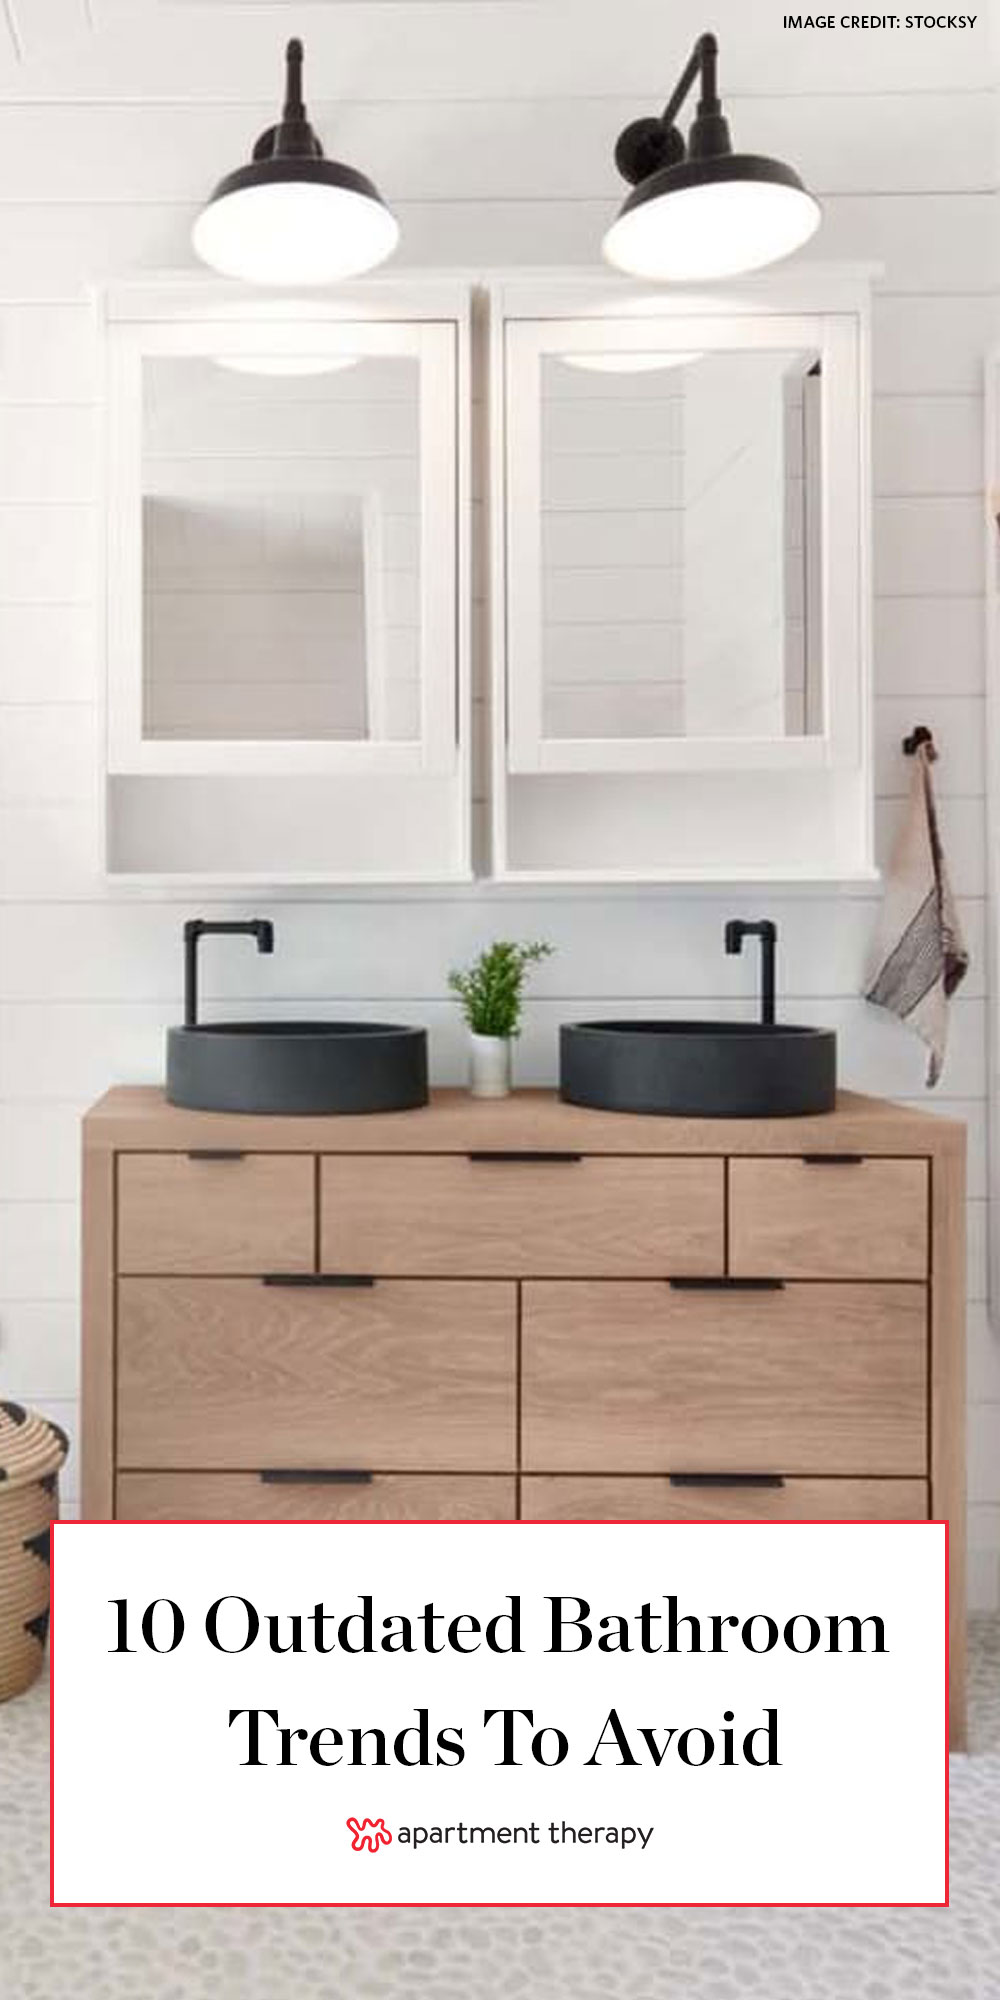 Admirable Outdated Bathroom Trends According To Real Estate Agents Pabps2019 Chair Design Images Pabps2019Com